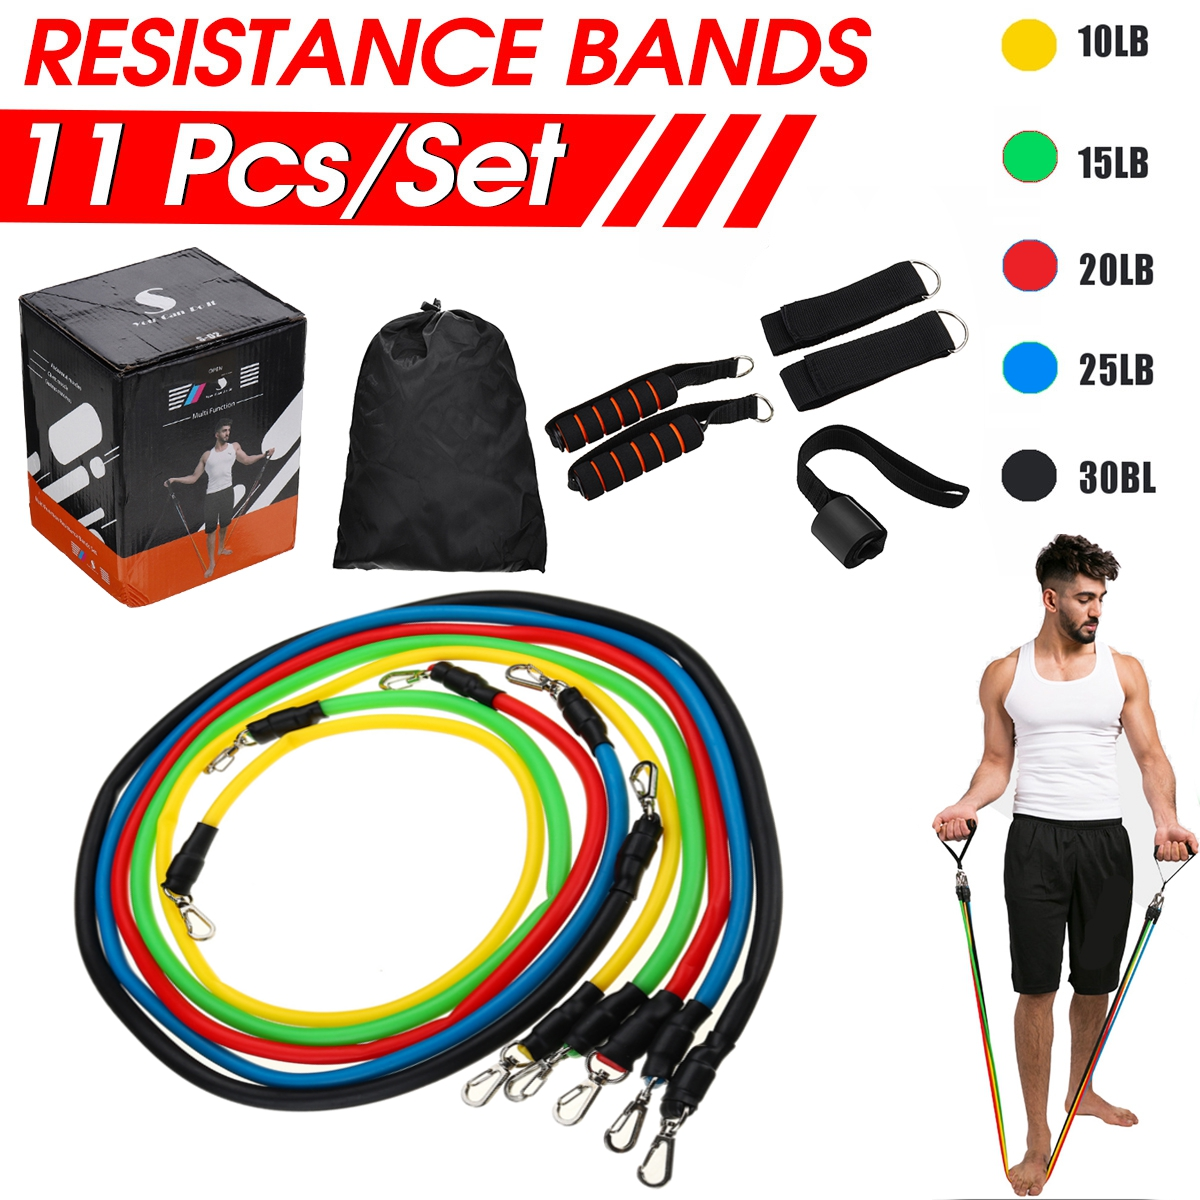 11 Pcs/Set Resistance Bands Tubes Natural Rubber Latex Elastic Band Pull Rope Stretch Training Home Gyms Fitness Equipments